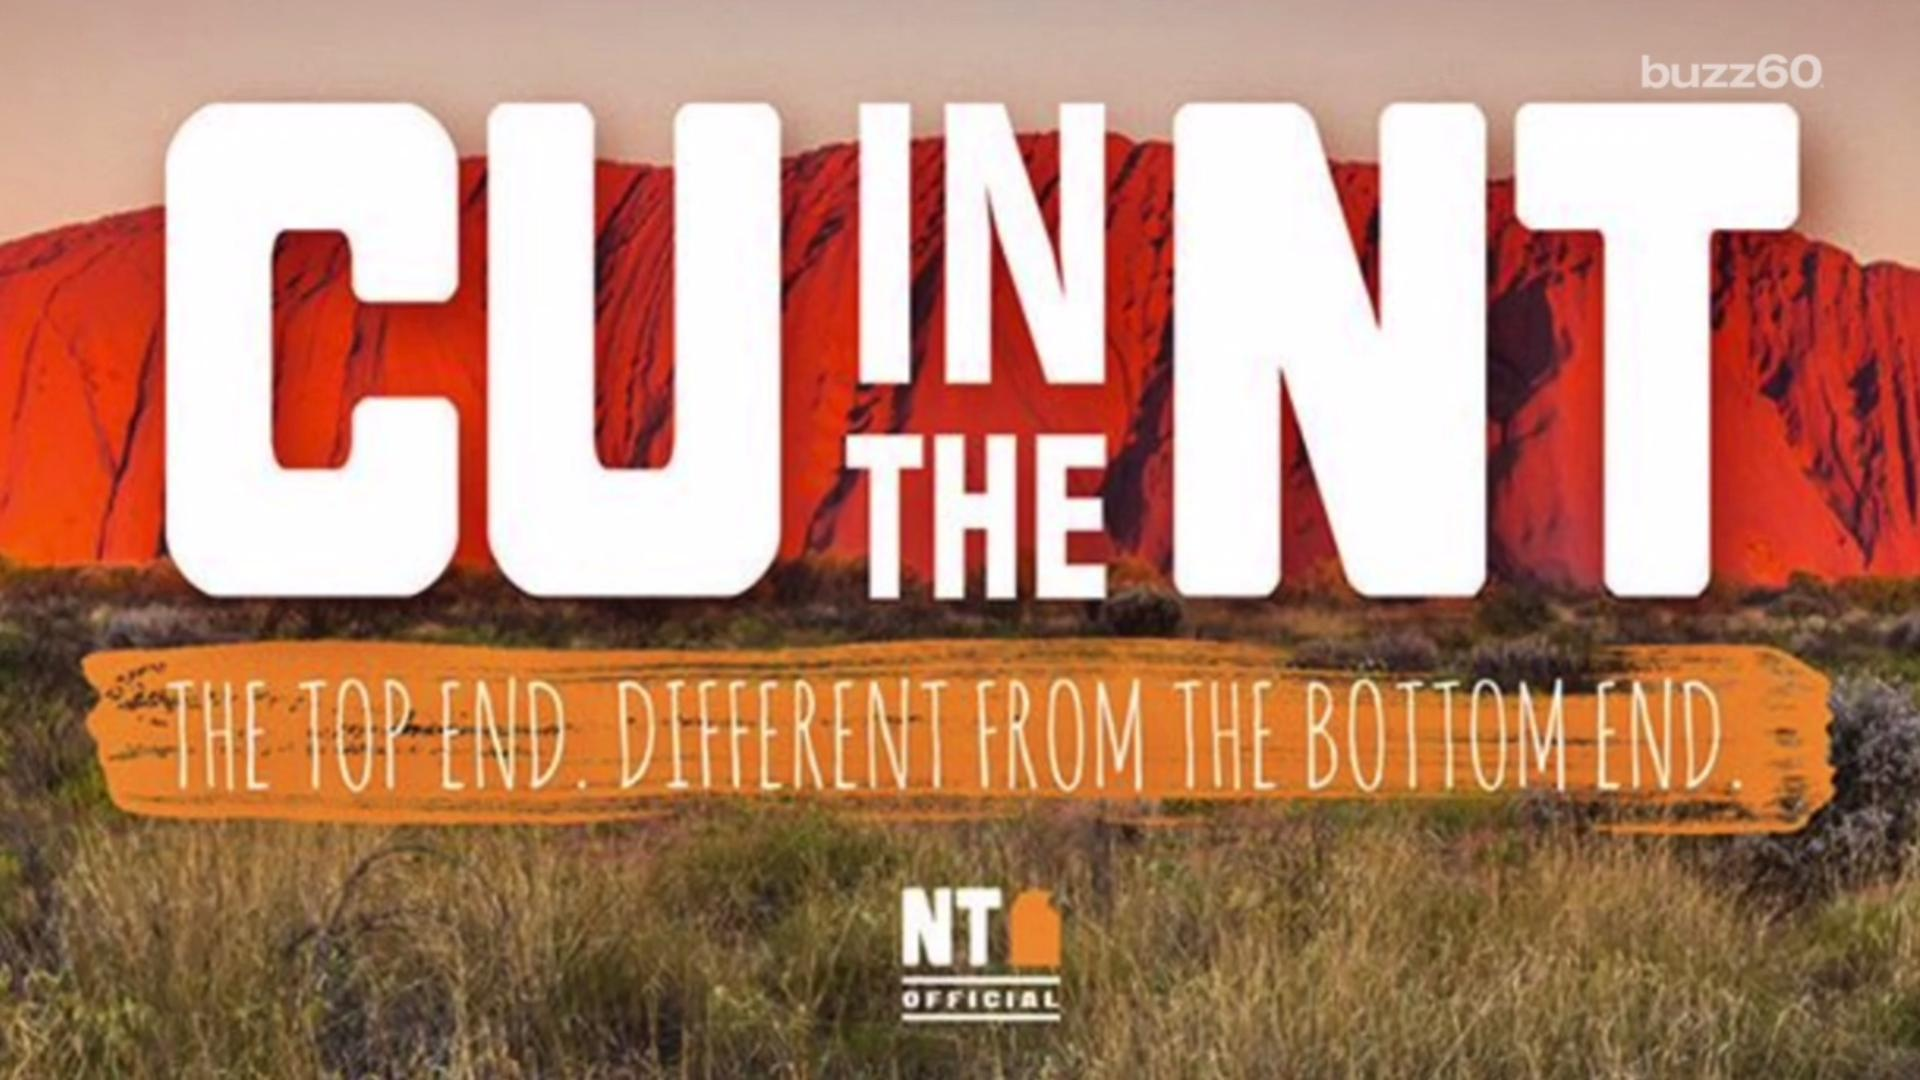 'Cu in the Nt' Is the Best Tourism Slogan out There